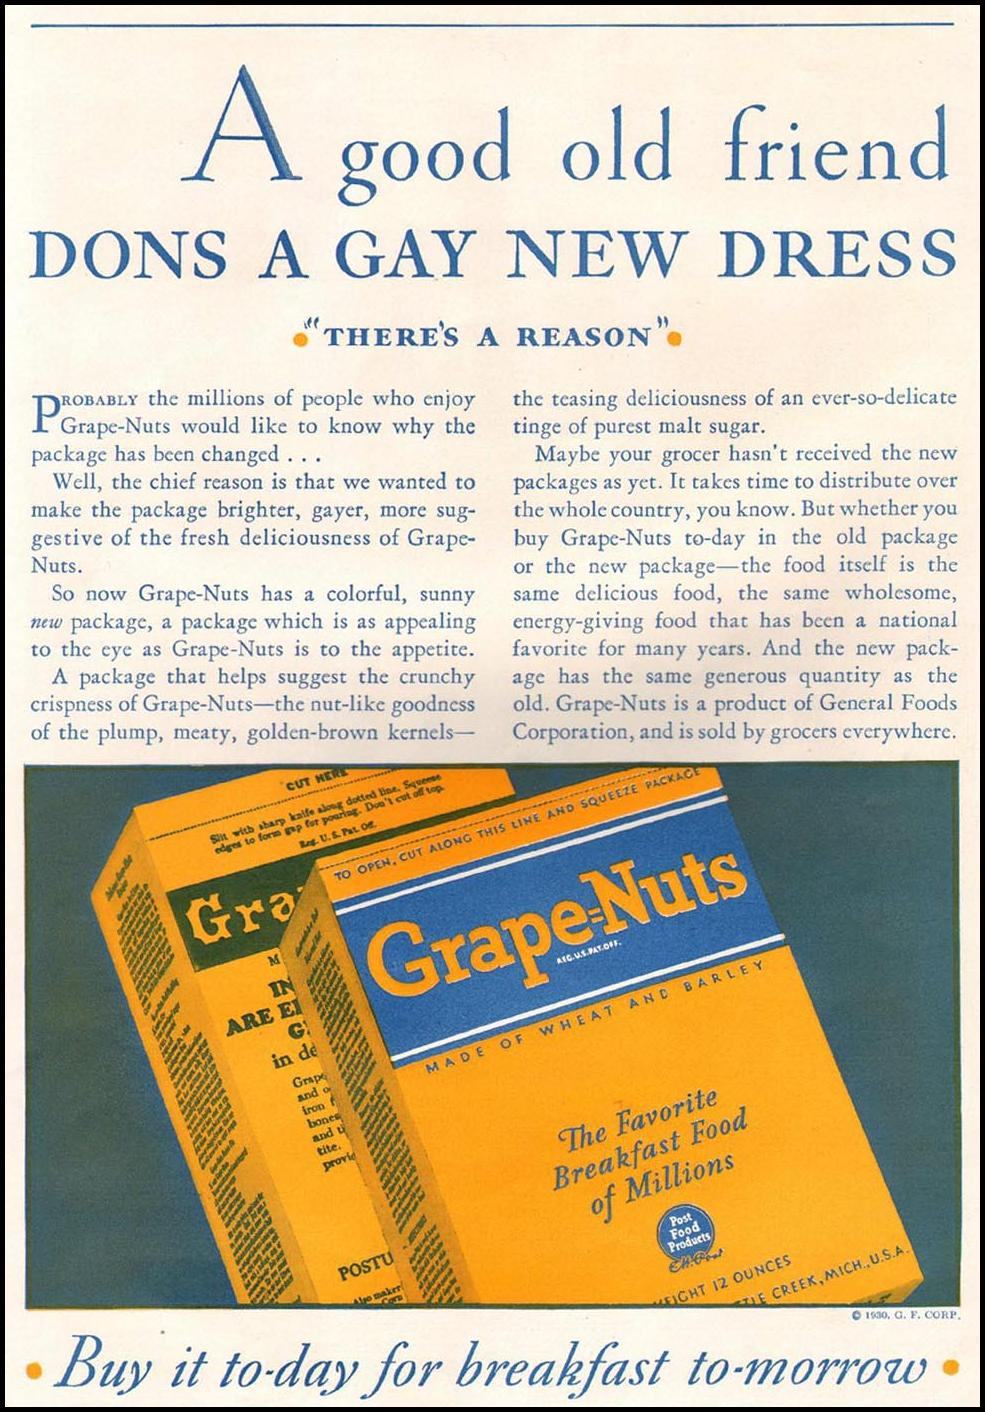 Post Grape Nuts